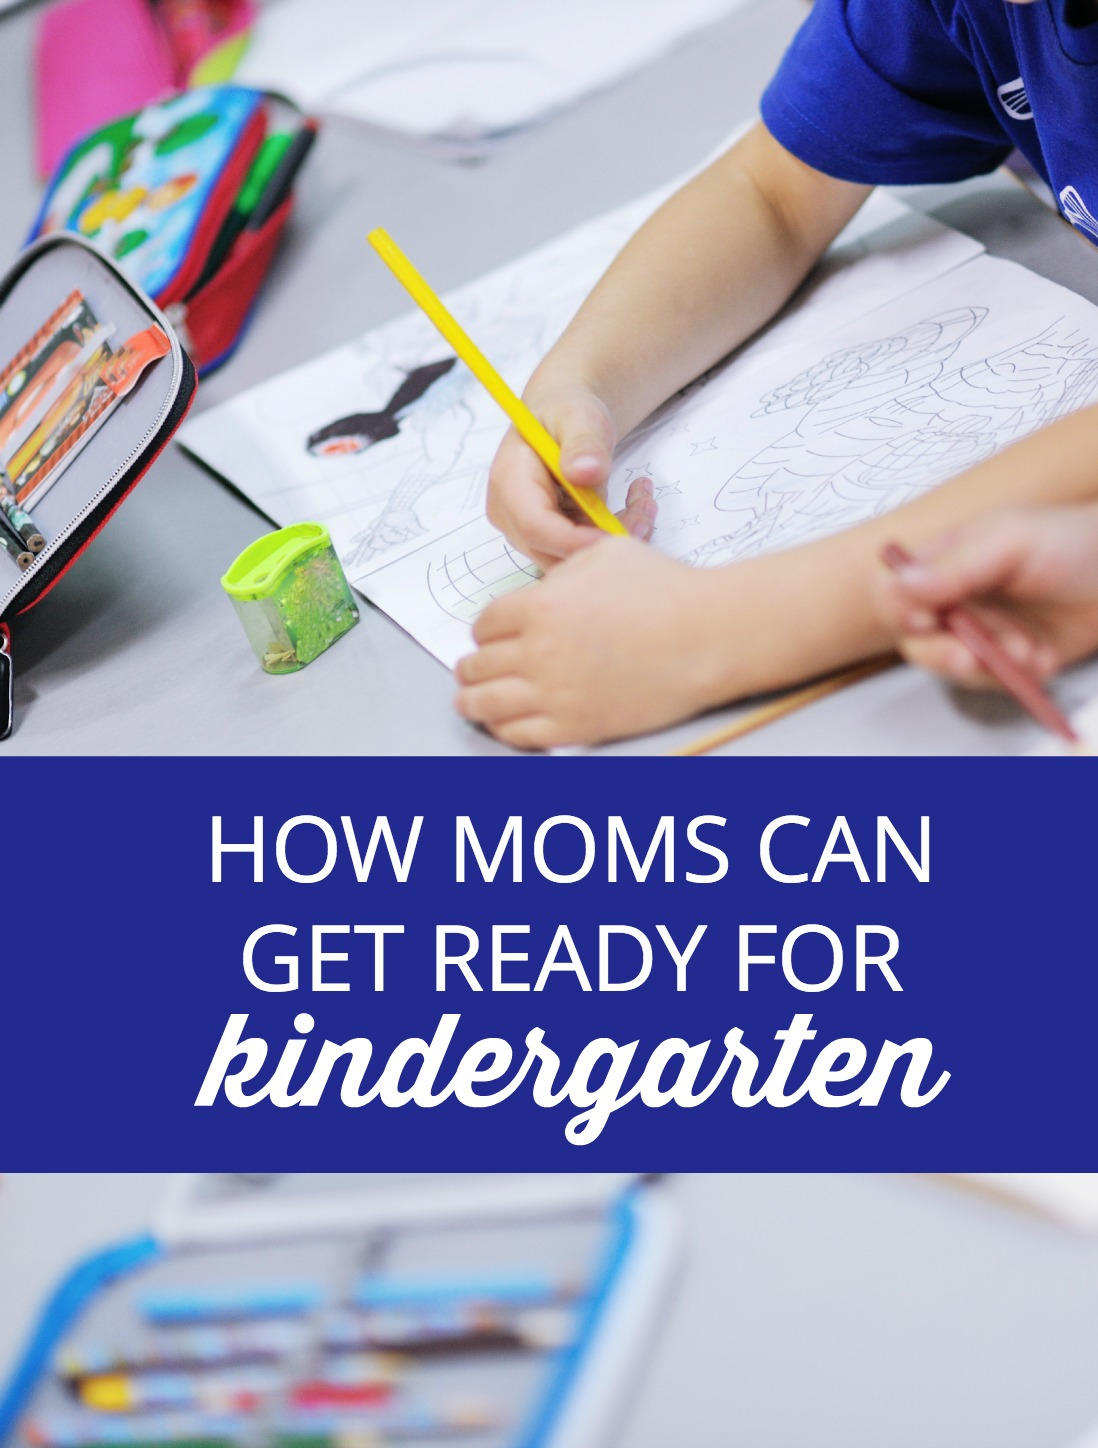 Looking ahead to when your child starts kindergarten? Here are 9 things moms need to know about making the transition from preschooler to kindergartner mom.